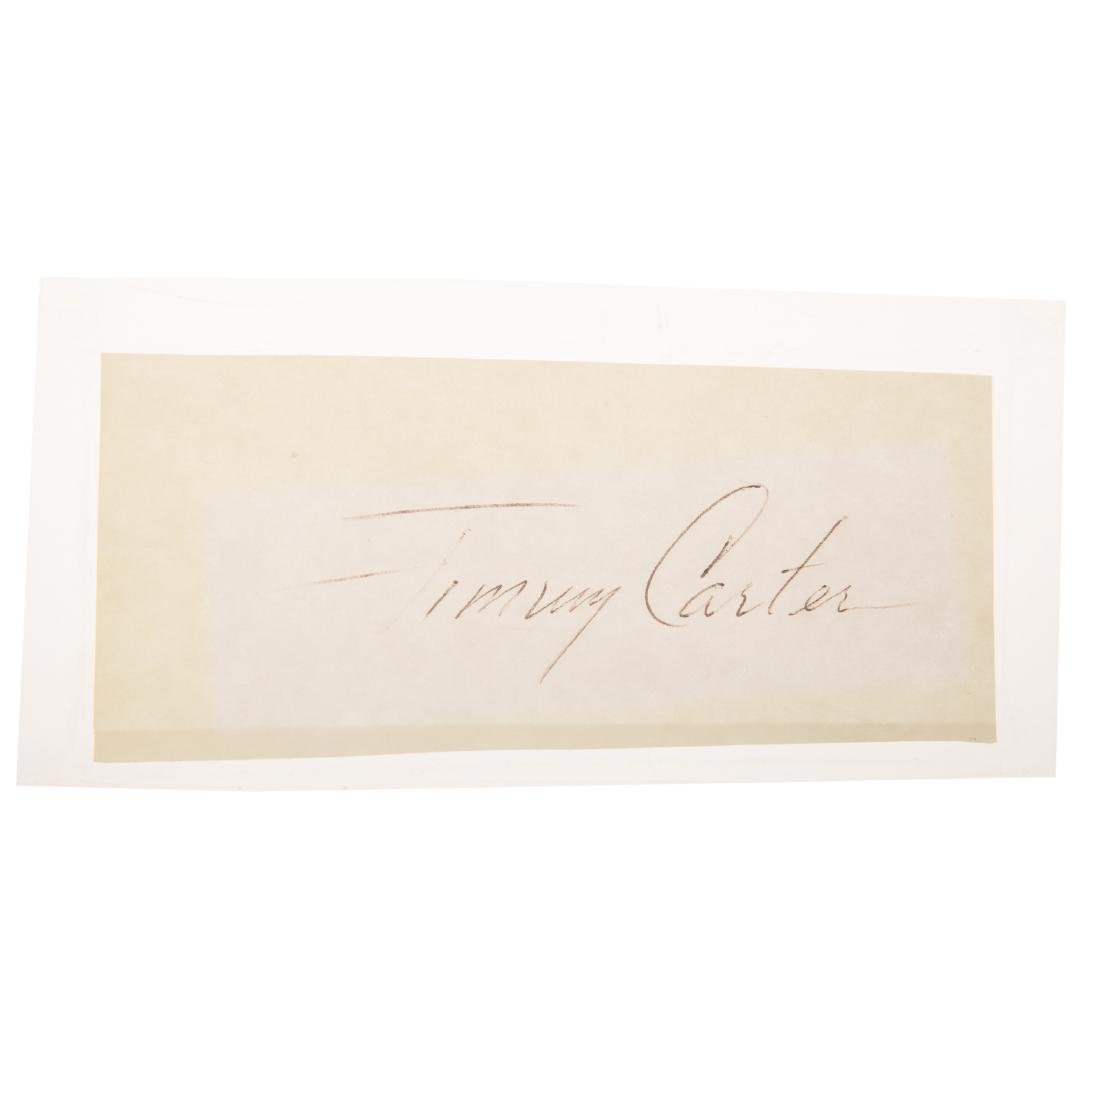 Eight former United States presidents signatures - 7